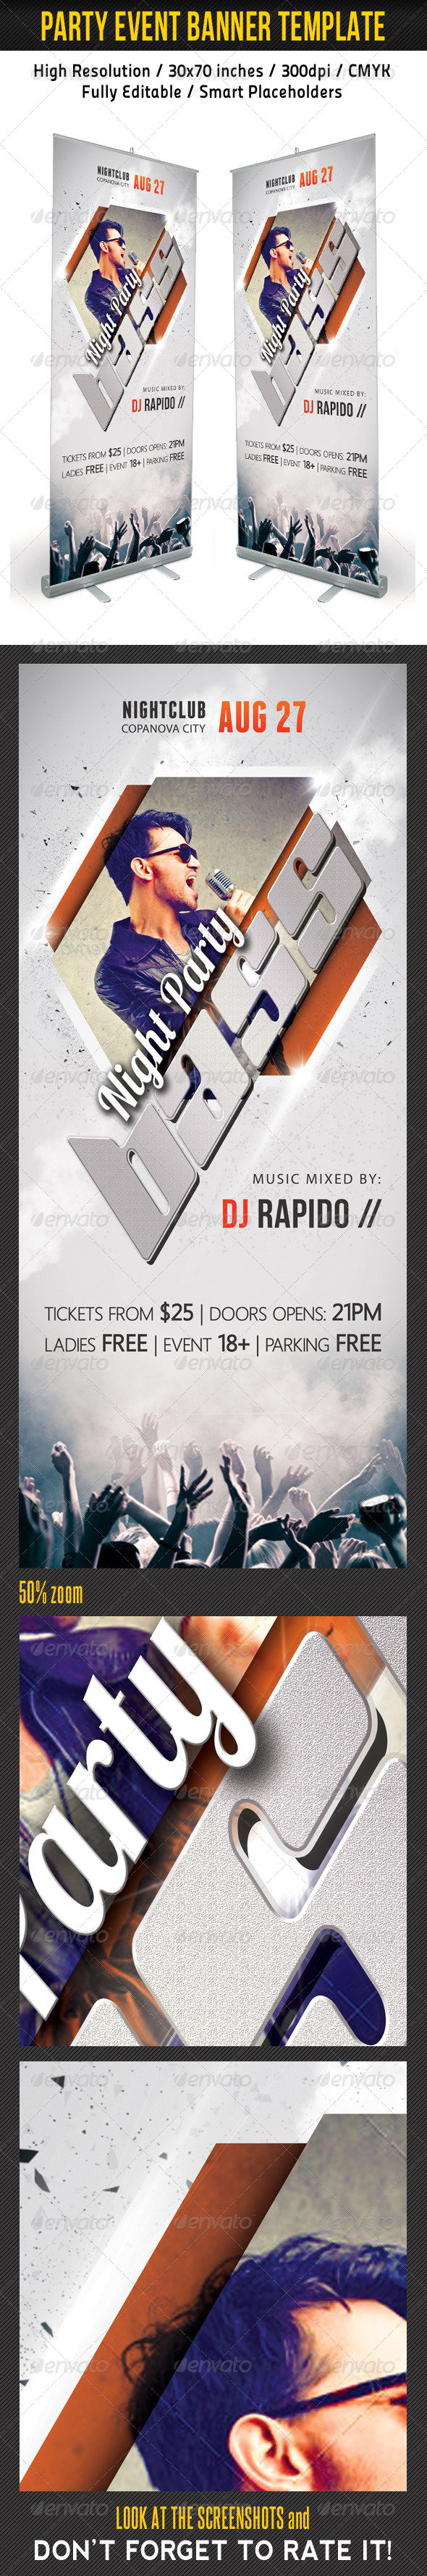 Party Event Multipurpose Banner Template 07